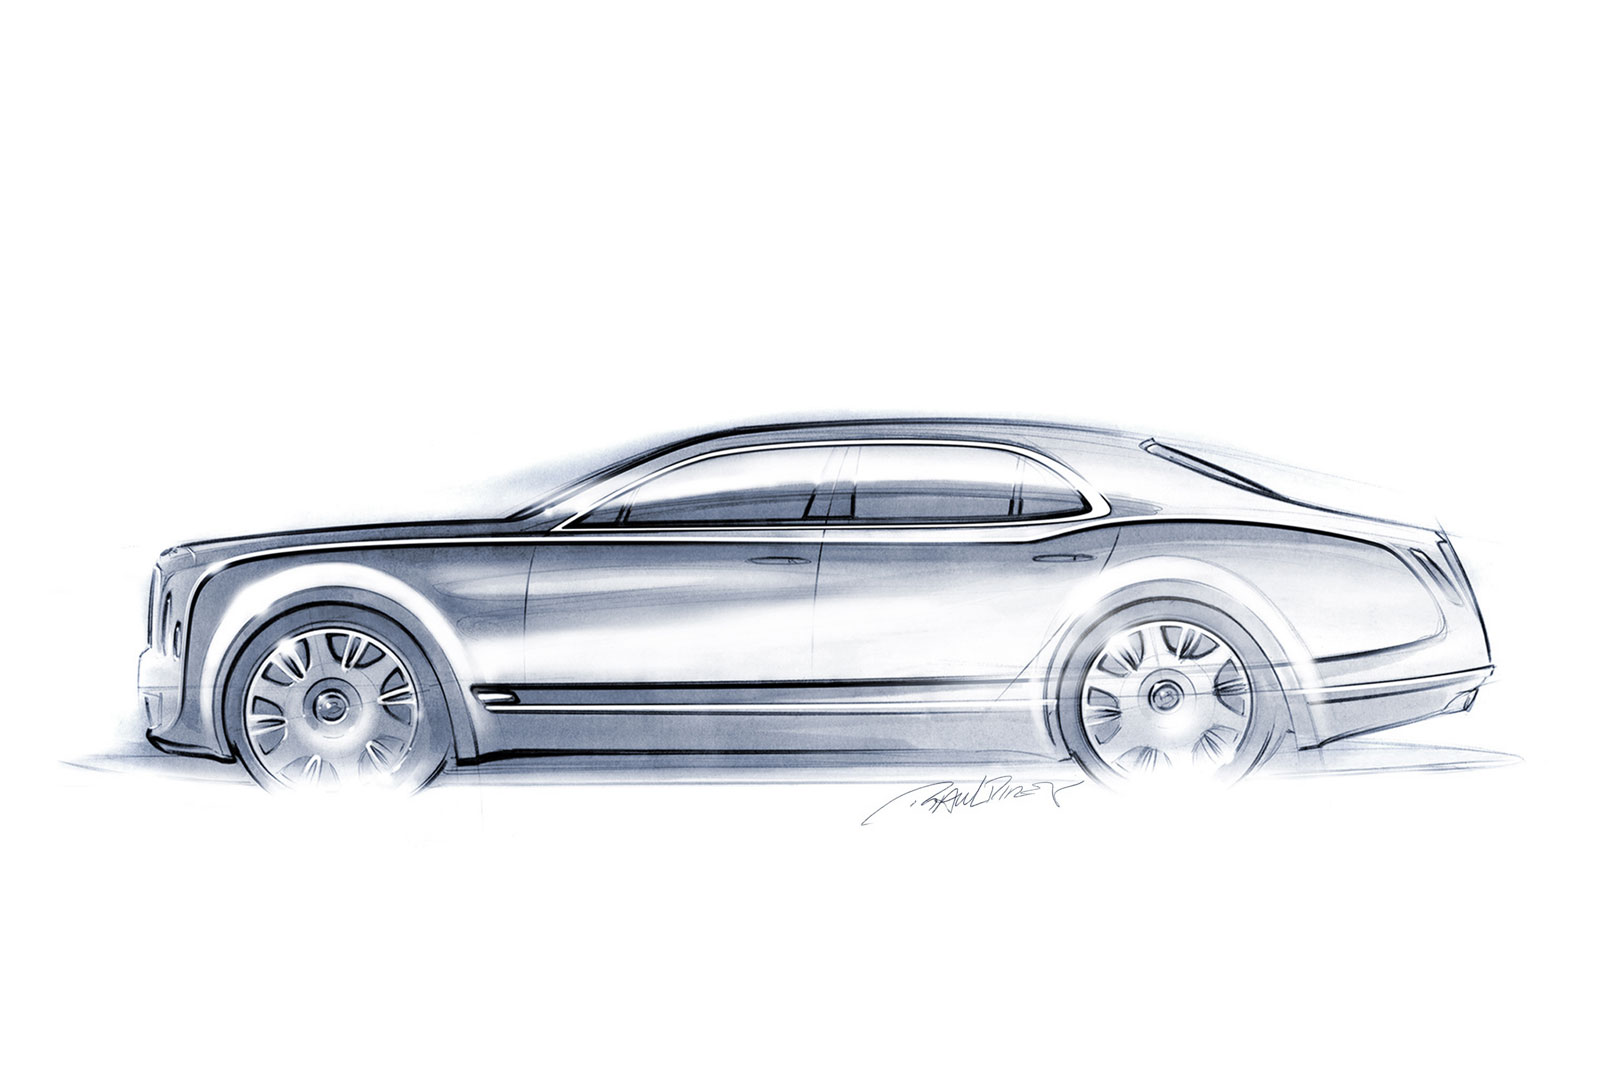 Bentley Mulsanne Updates Page 2 Car Body Design Continental Wiring Diagram Chassis